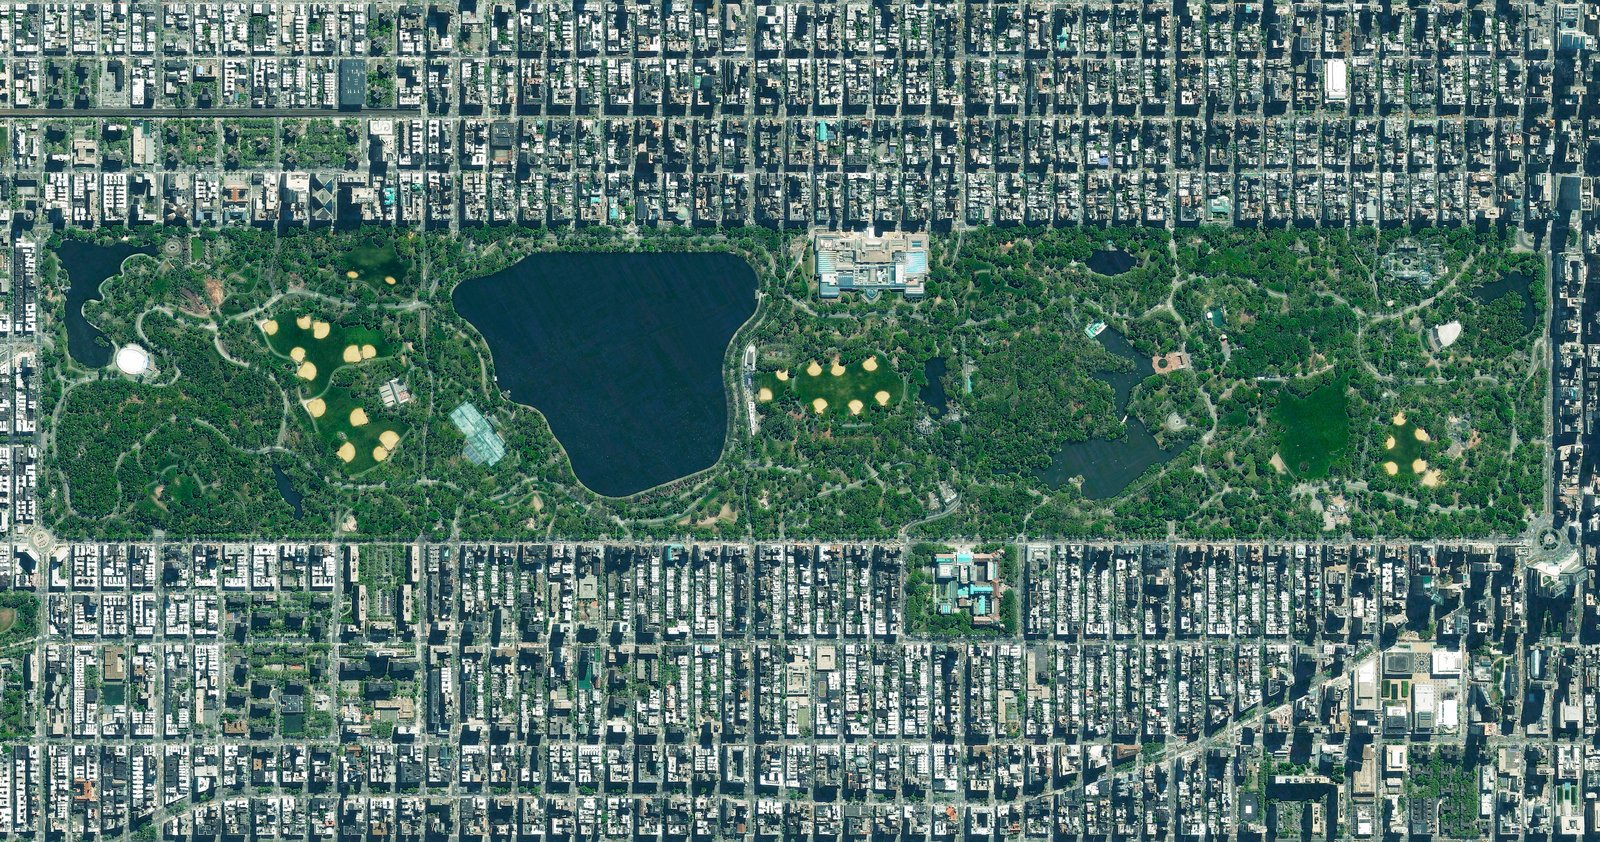 Neatly delineated into as grid of streets, Manhattan's Central Park appears to comprise more than its actual footprint of just 6% of the island borough. Reprinted with permission from Overview by Benjamin Grant, copyright (c) 2016. Published by Amphoto Books, a division of Penguin Random House, Inc.   Images (c) 2016 by DigitalGlobe, Inc.   Ever Wondered About the View from Space?